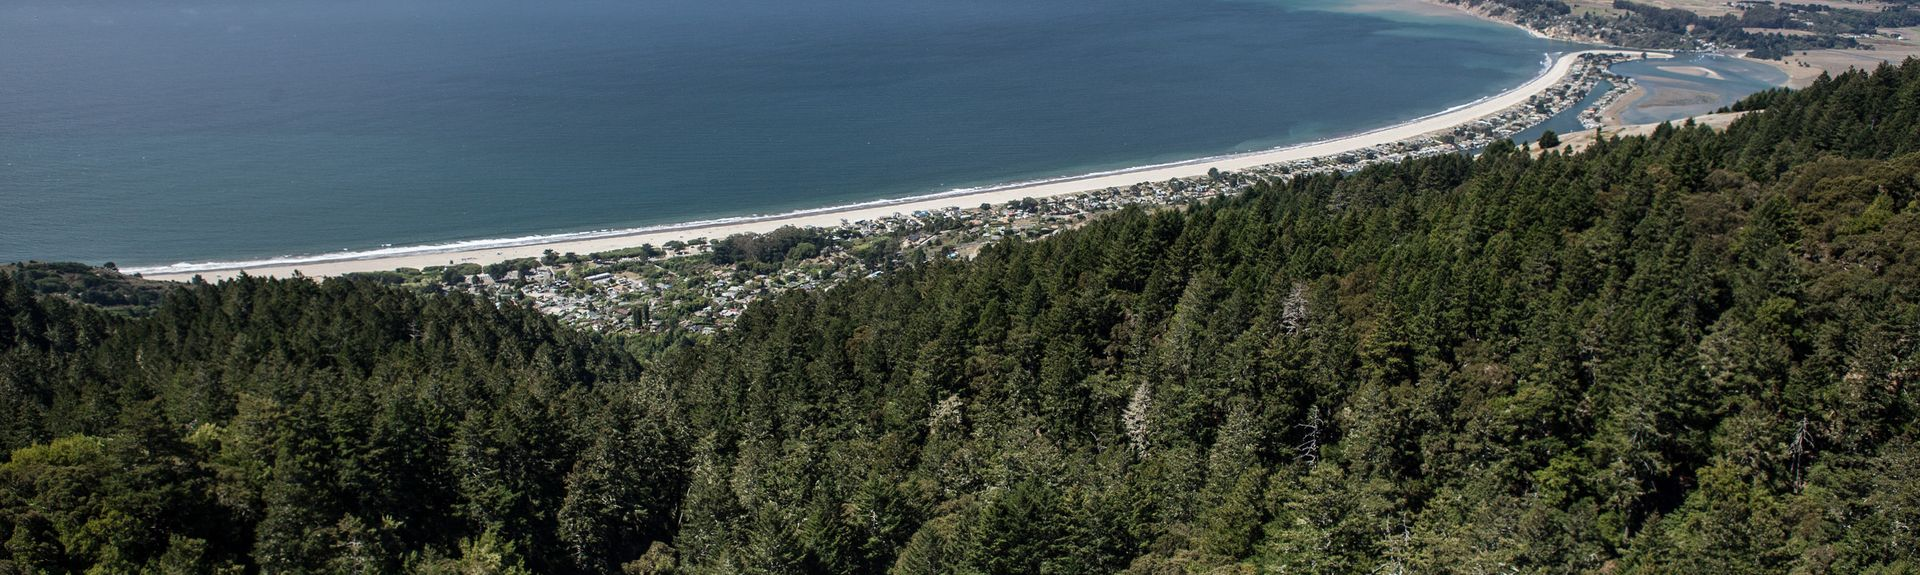 Stinson Beach, California, United States